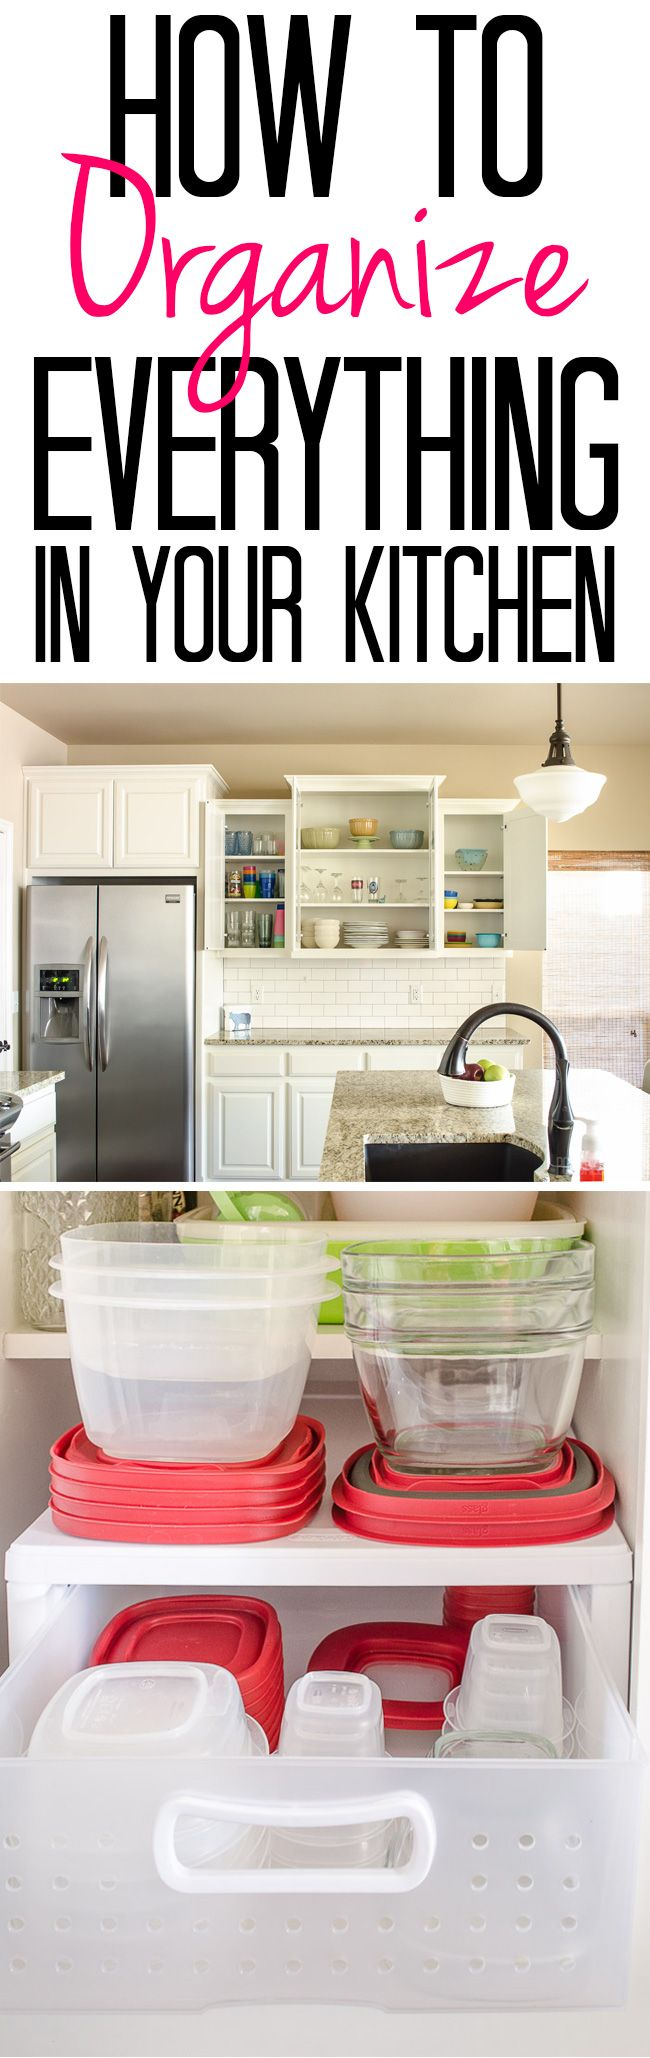 How to Organize Everything in Your Kitchen | Pinterest | Organizing ...